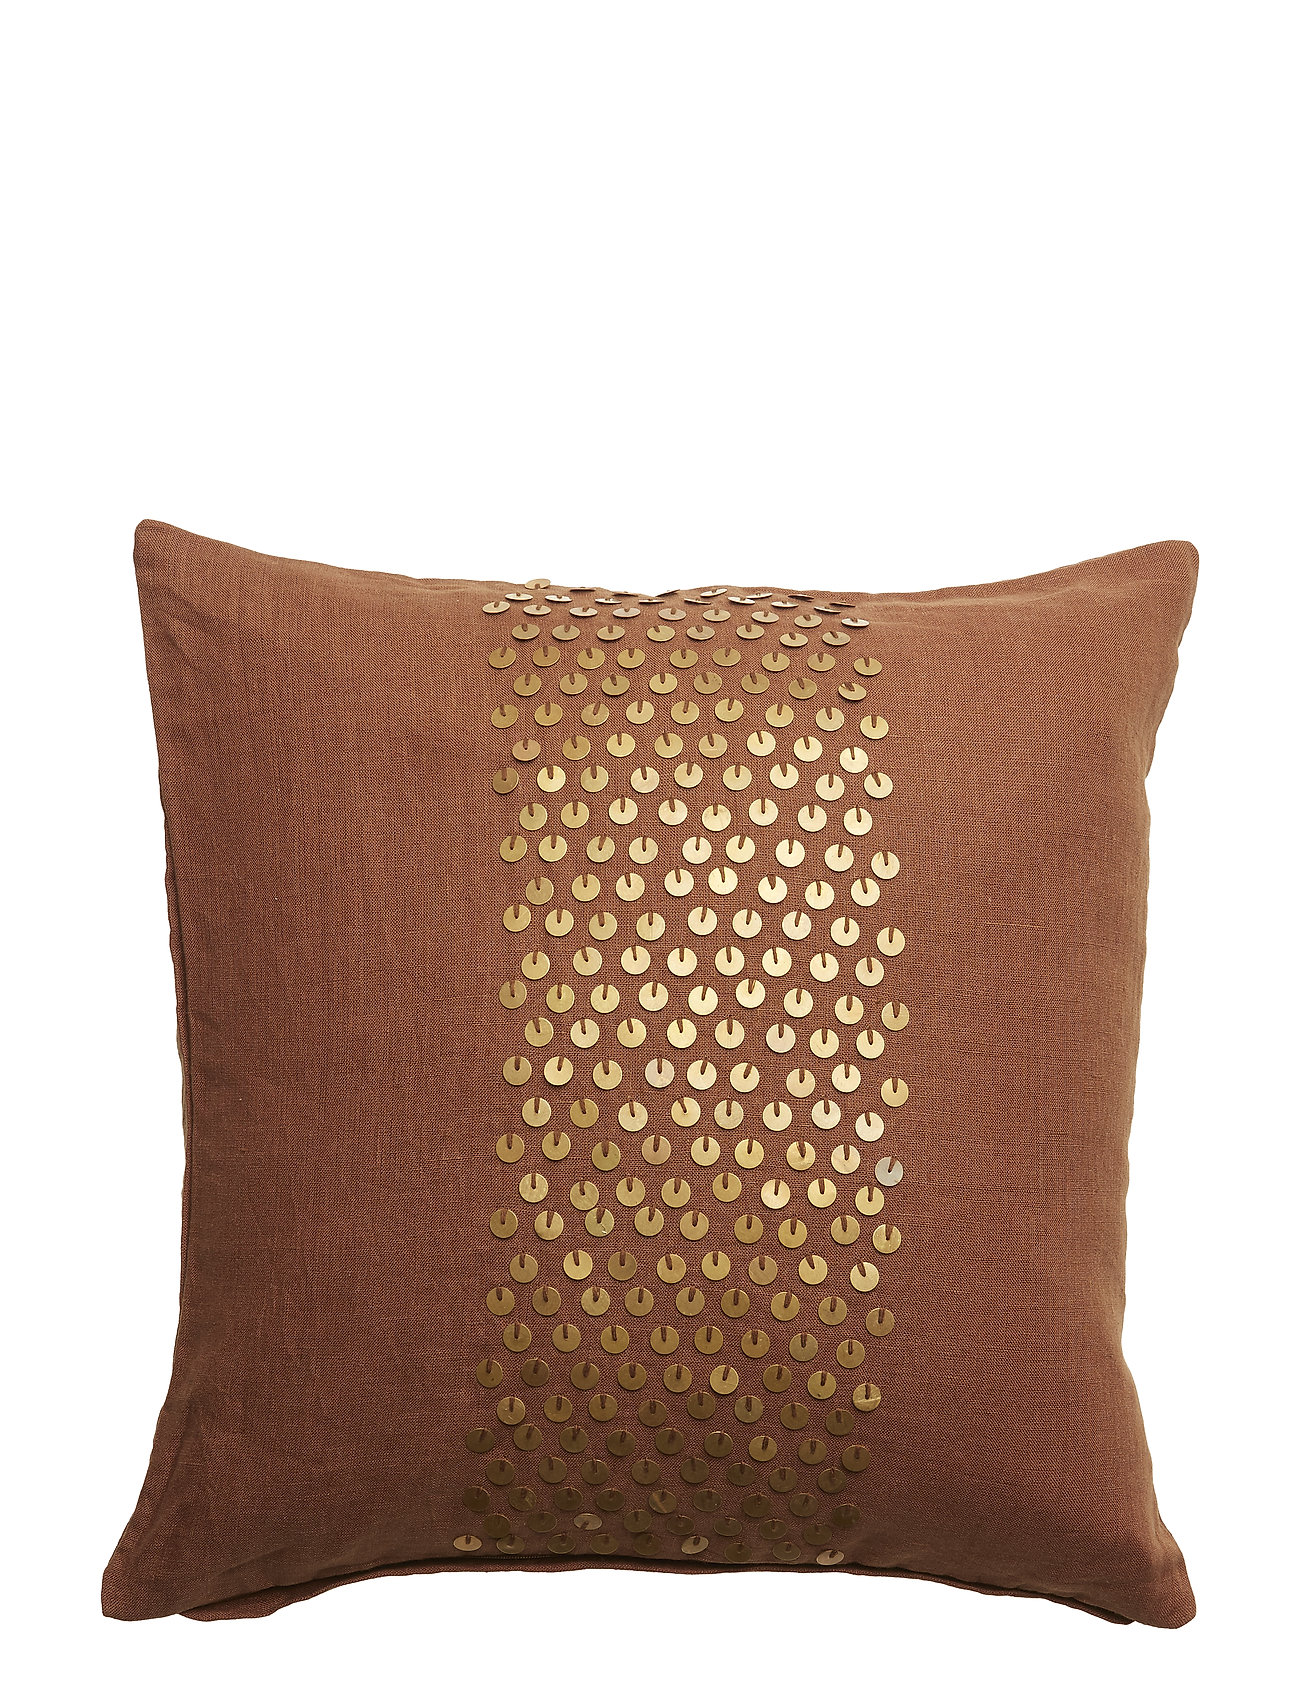 DAY Home Day Maroc Cushion cover - CARAMEL